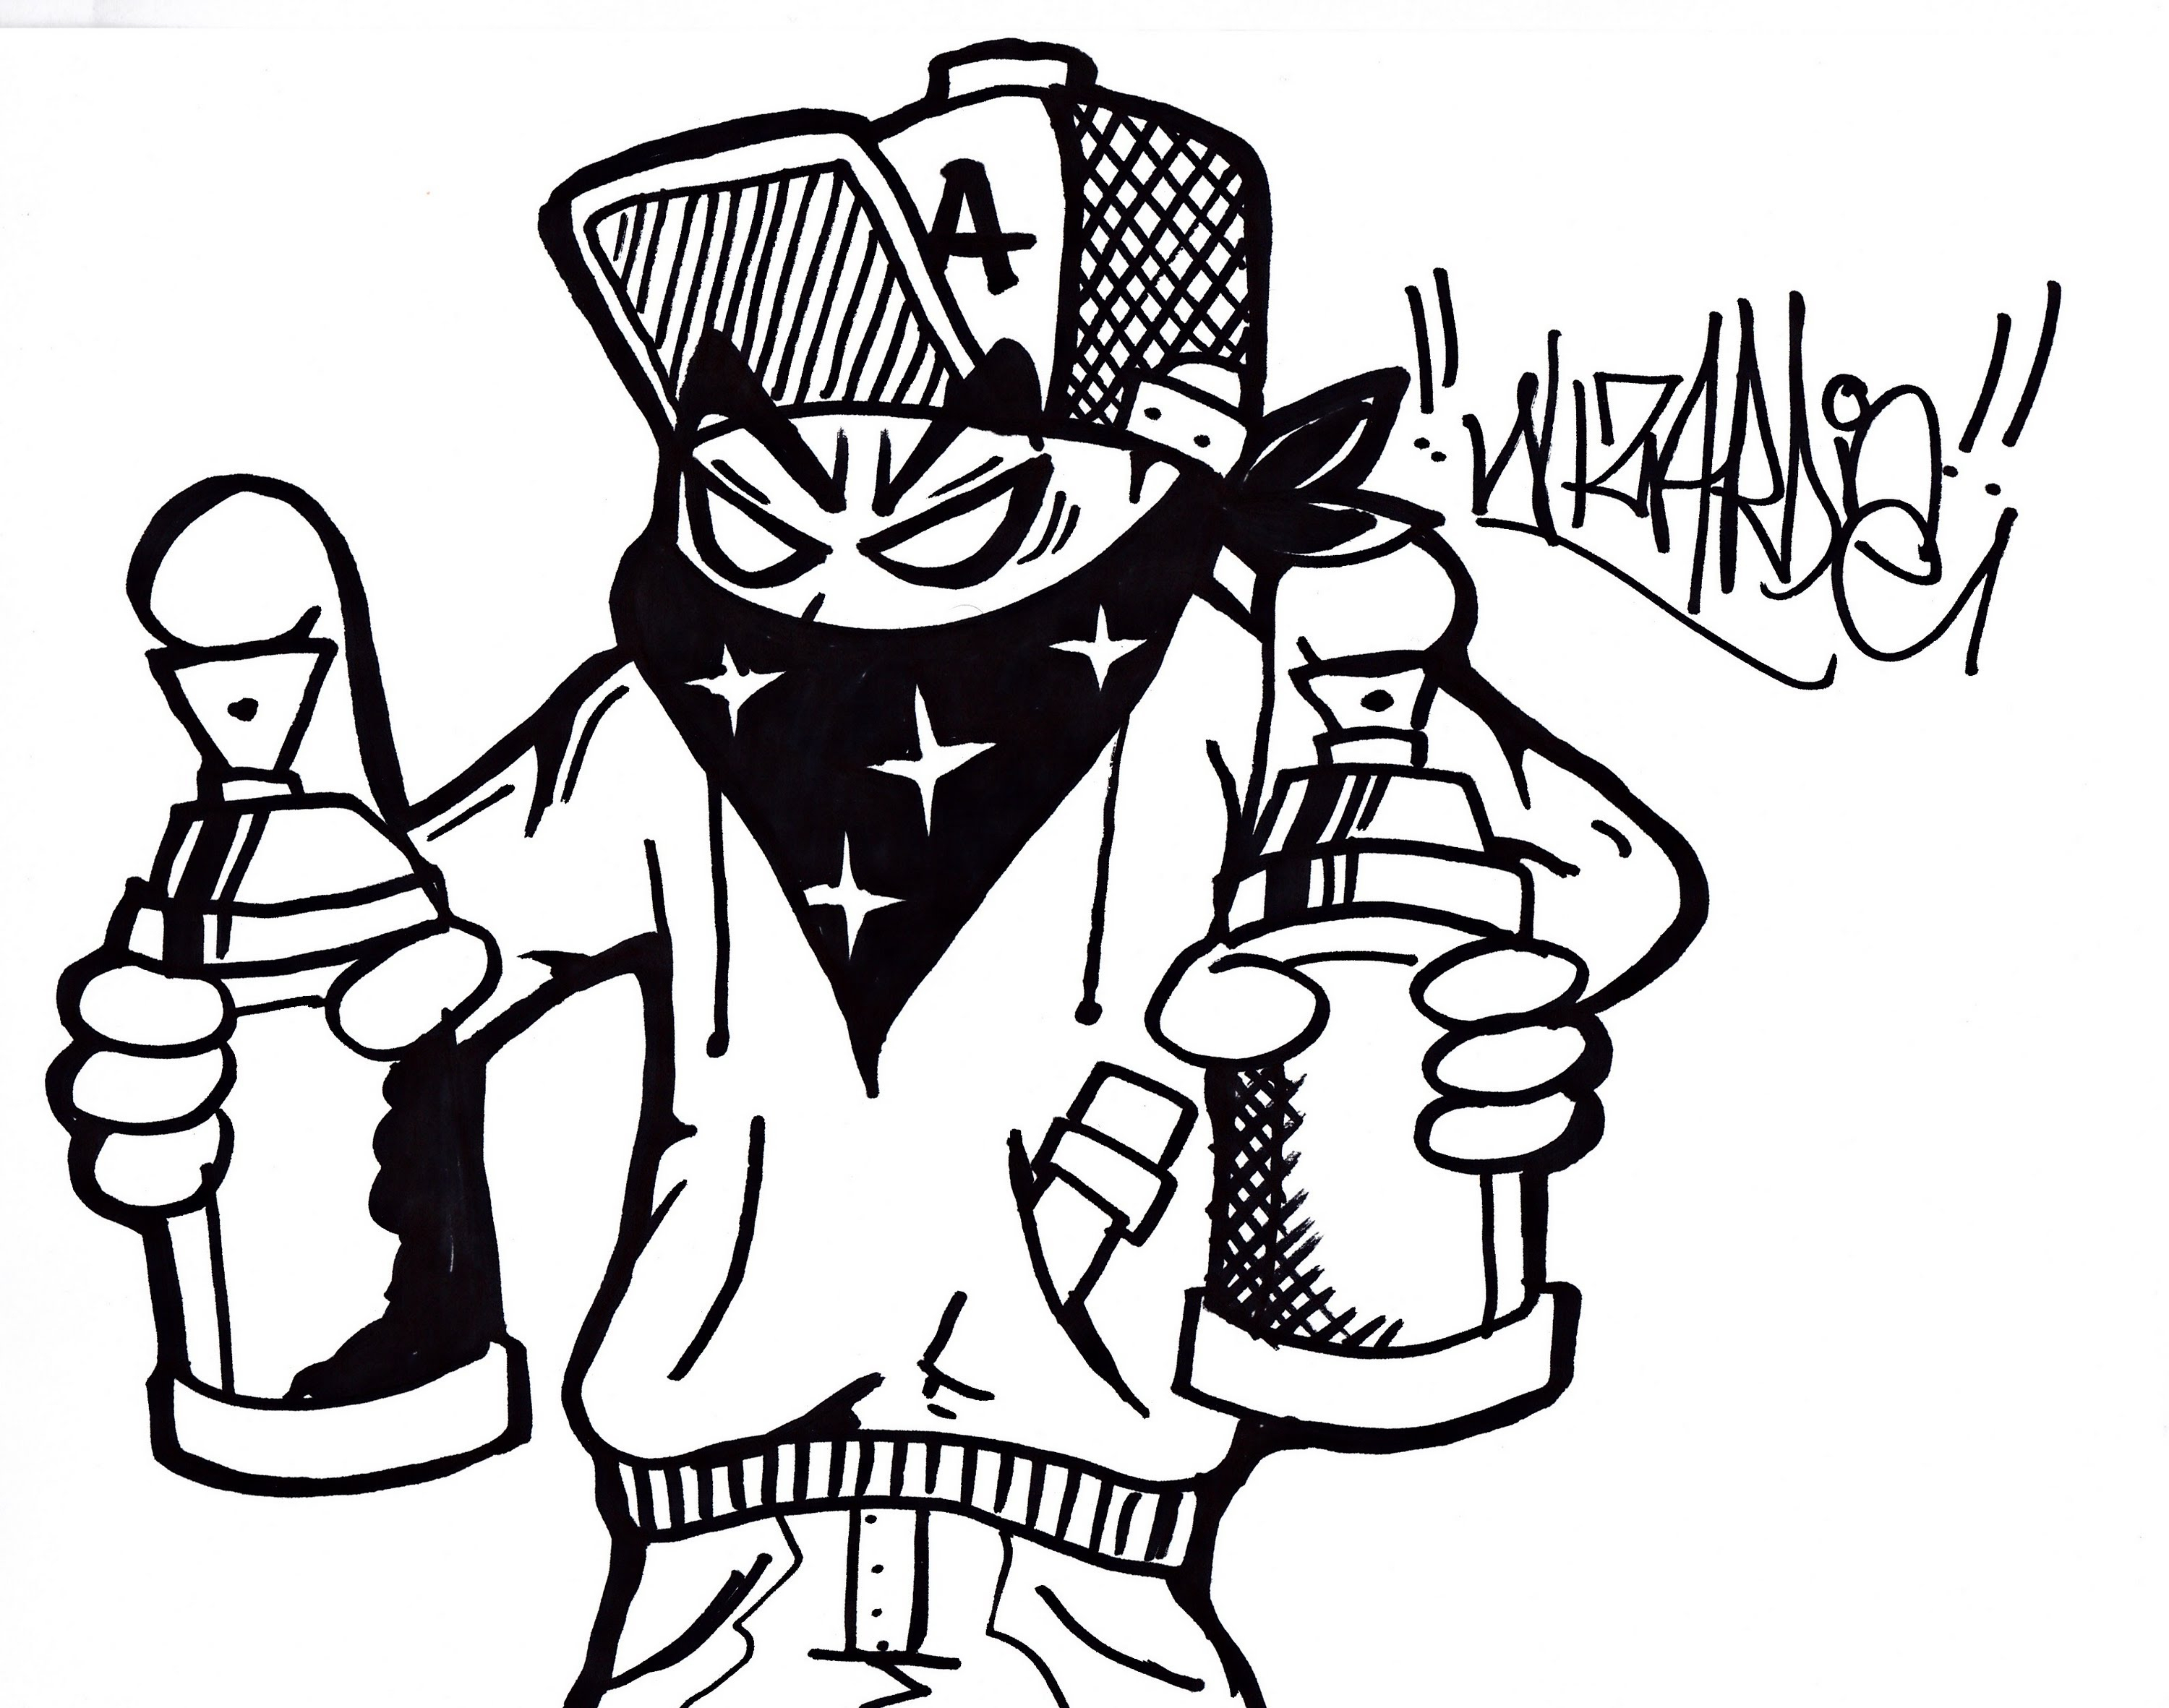 3000x2363 Graffiti Spray Can Drawings Characters Sketches Spray Graffiti